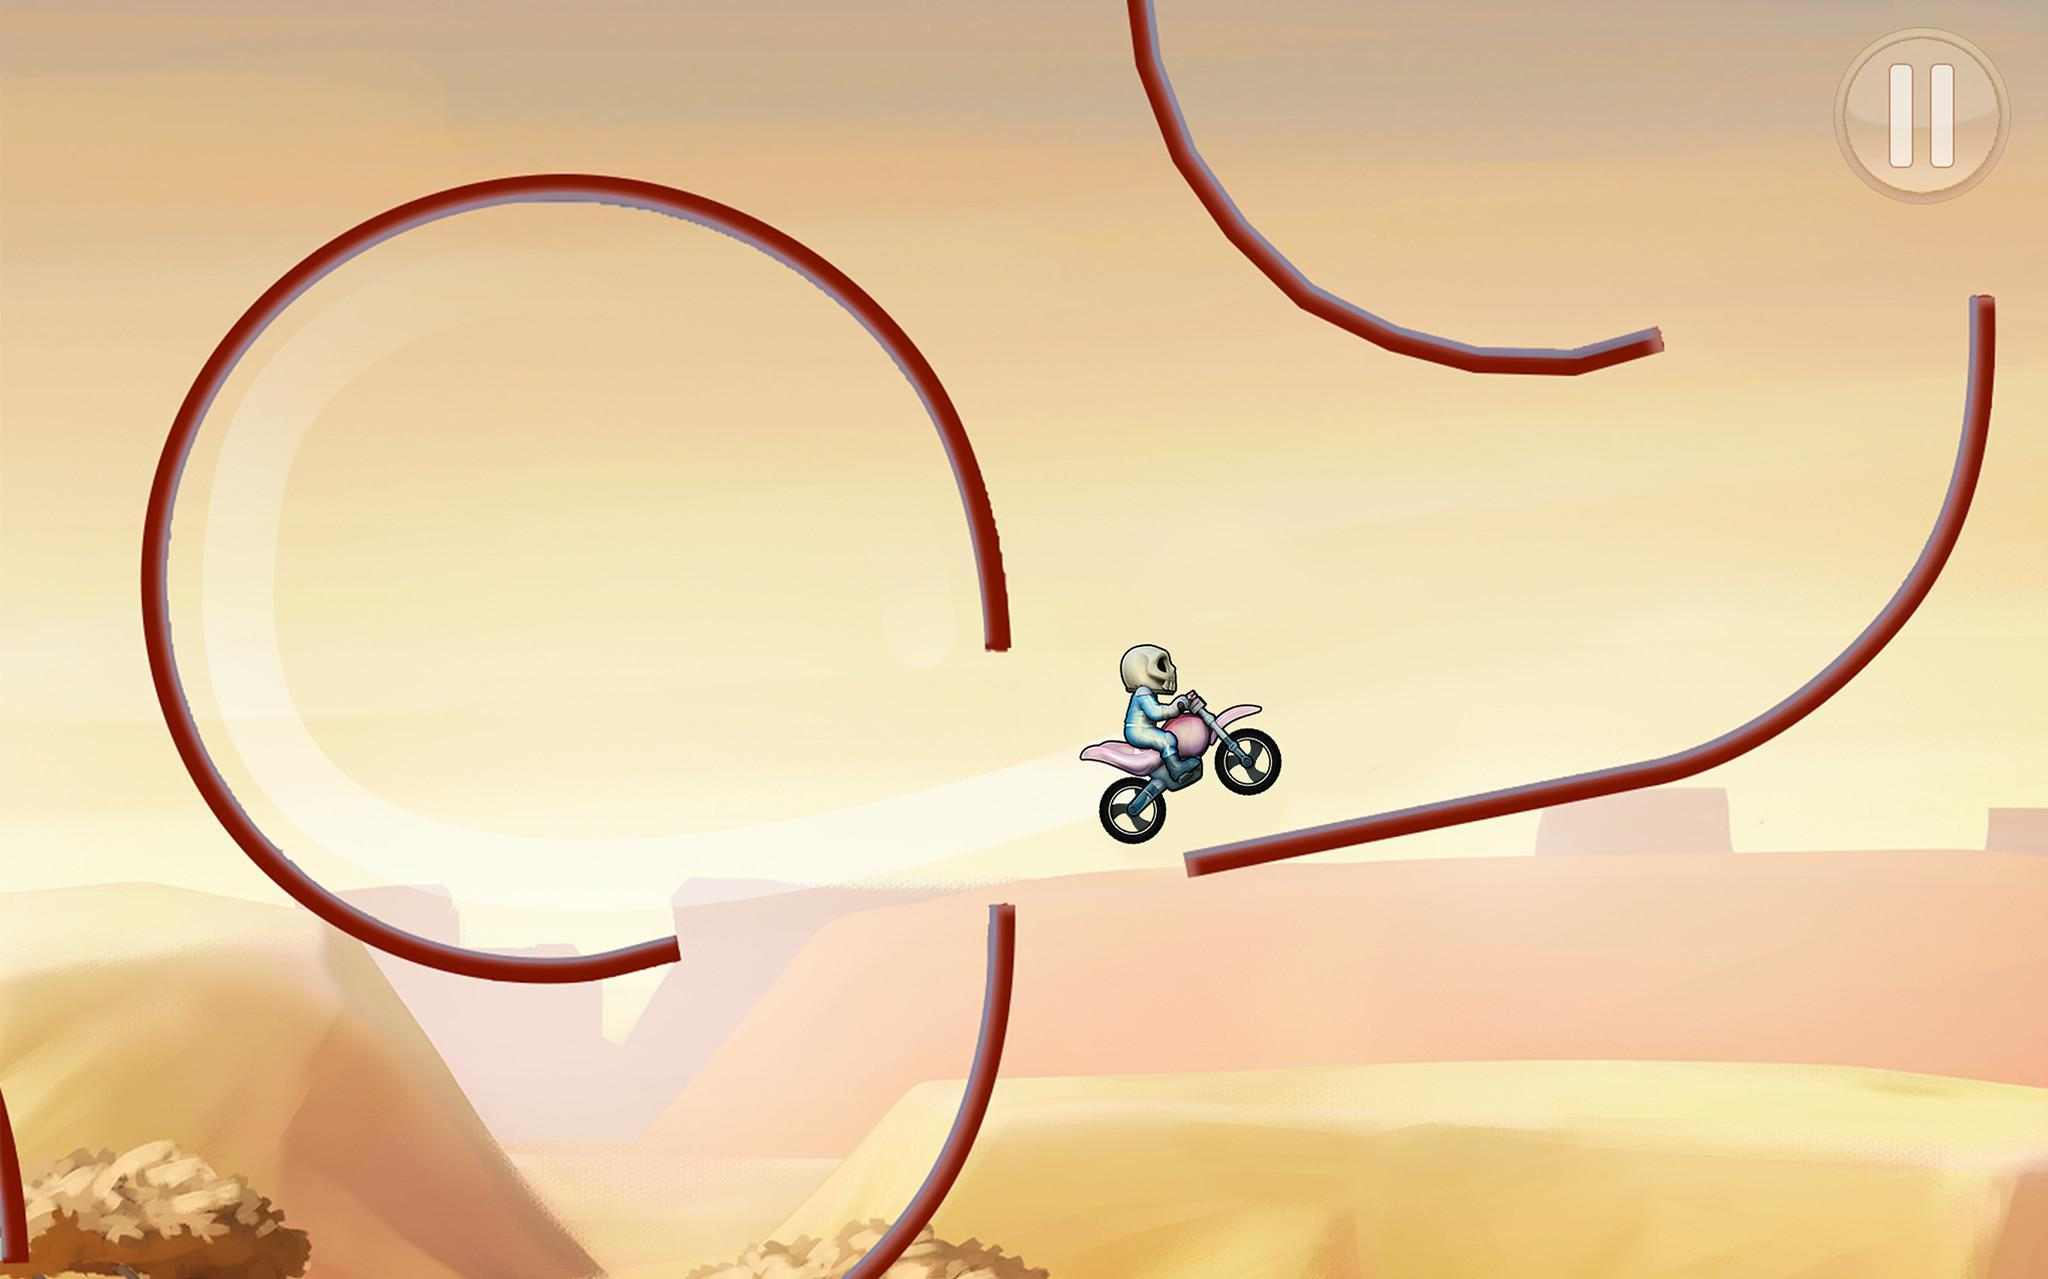 Download-Bike-Race-Pro